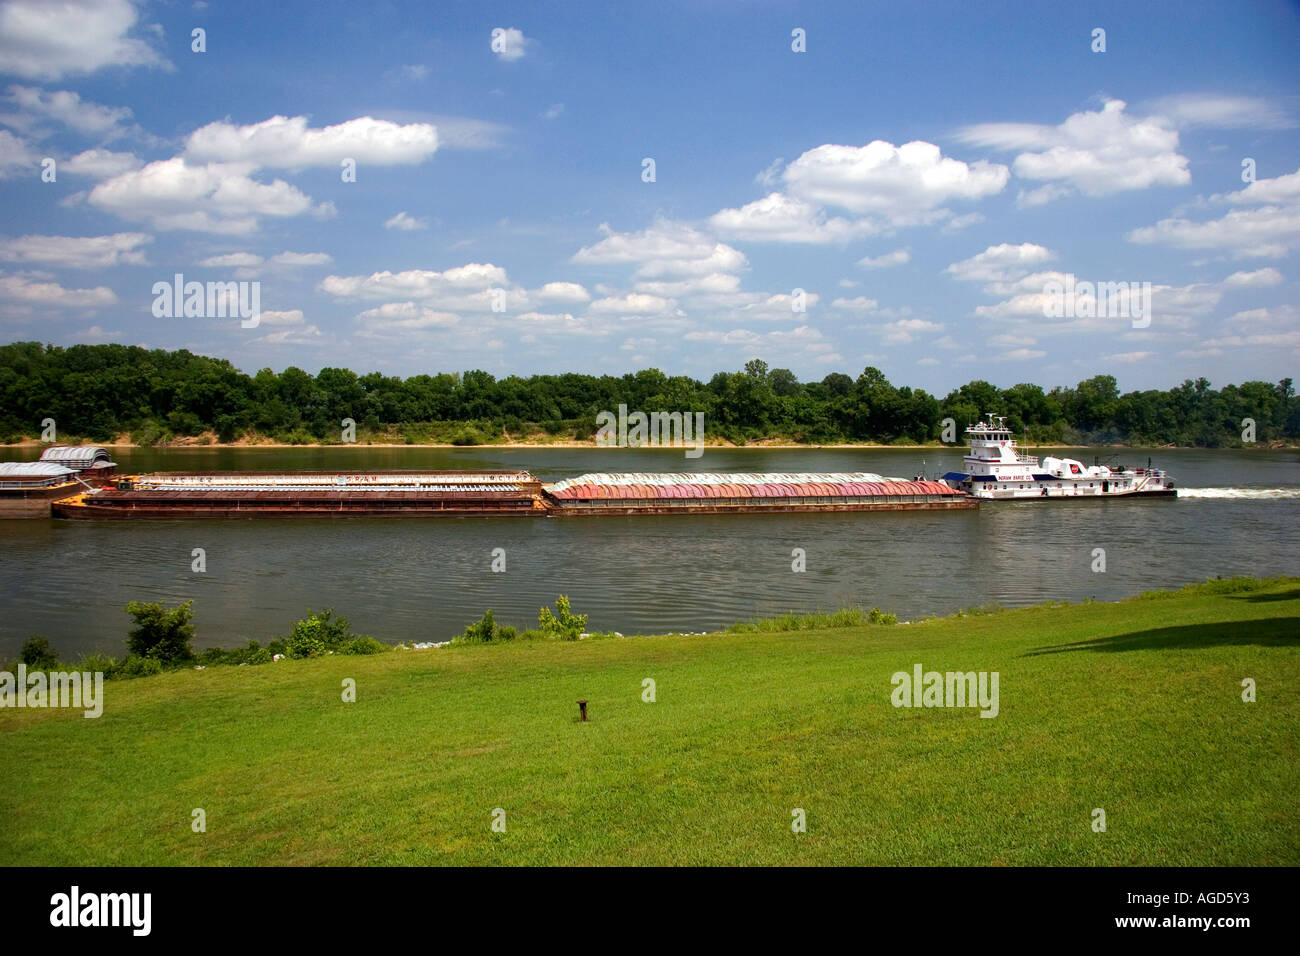 A tugboat and river barge on the Tennessee River at Shiloh, Tennessee. - Stock Image